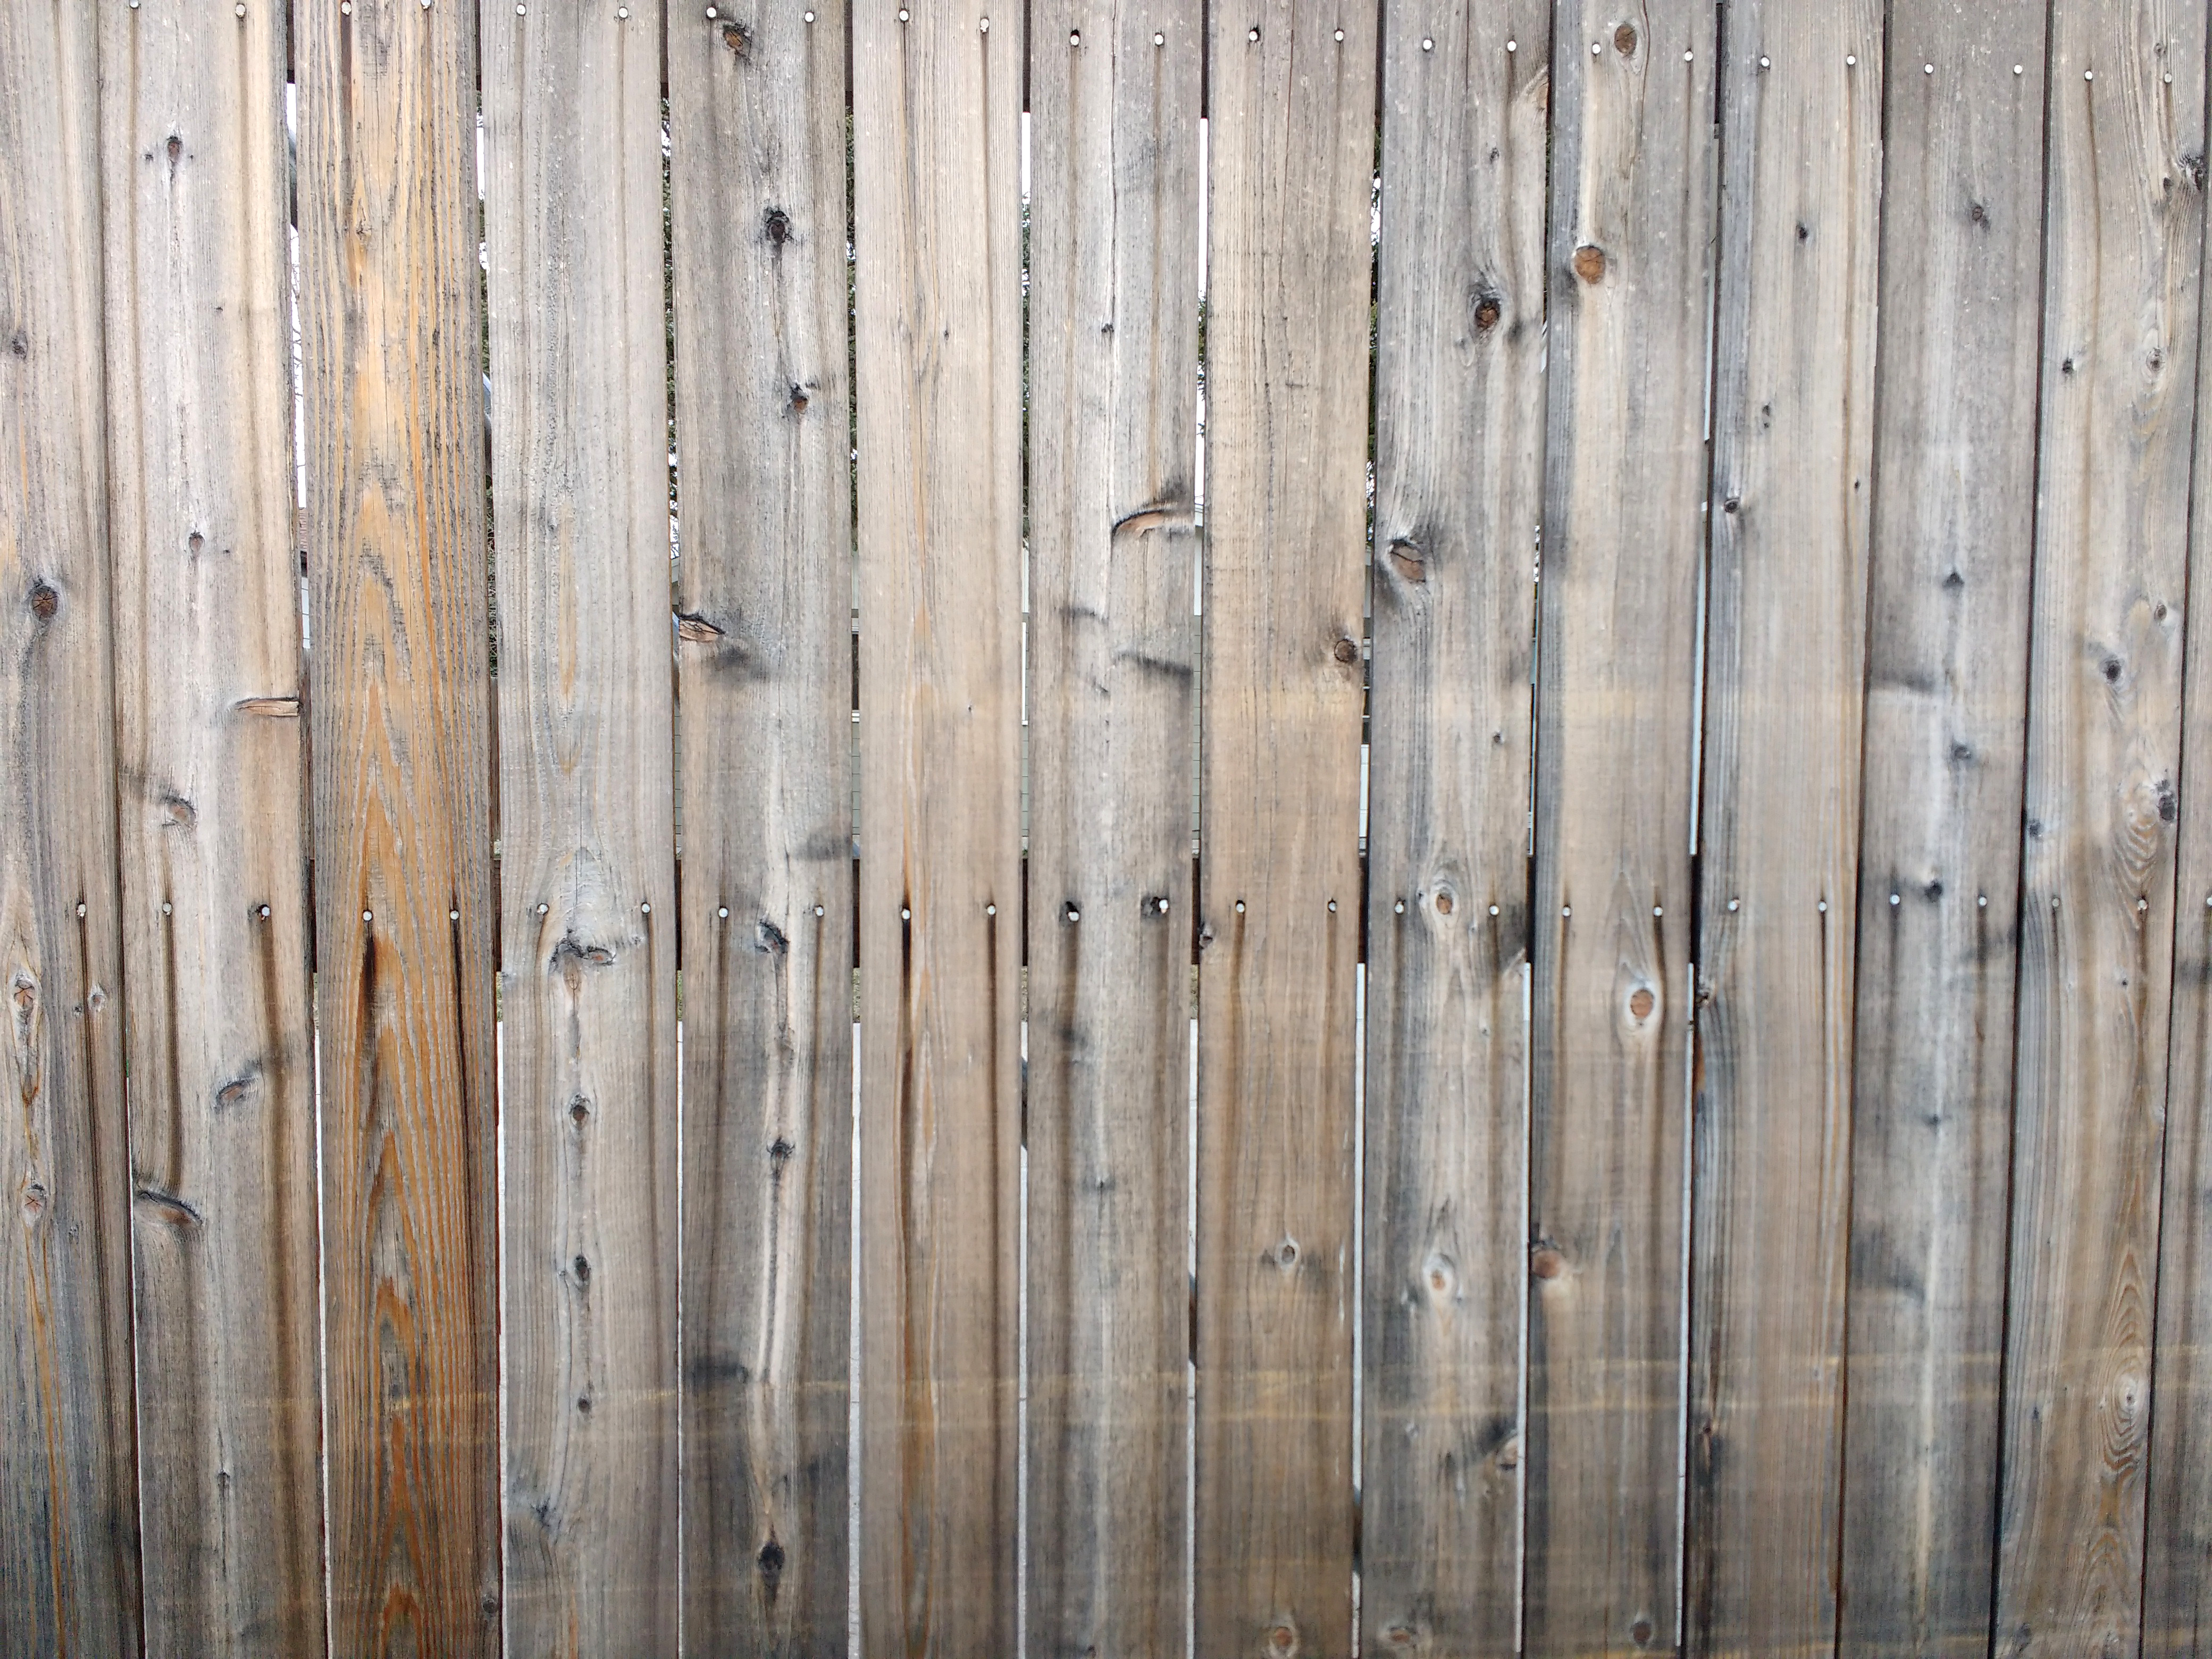 Wooden Fence Boards Texture With Nail Streaks Picture Free